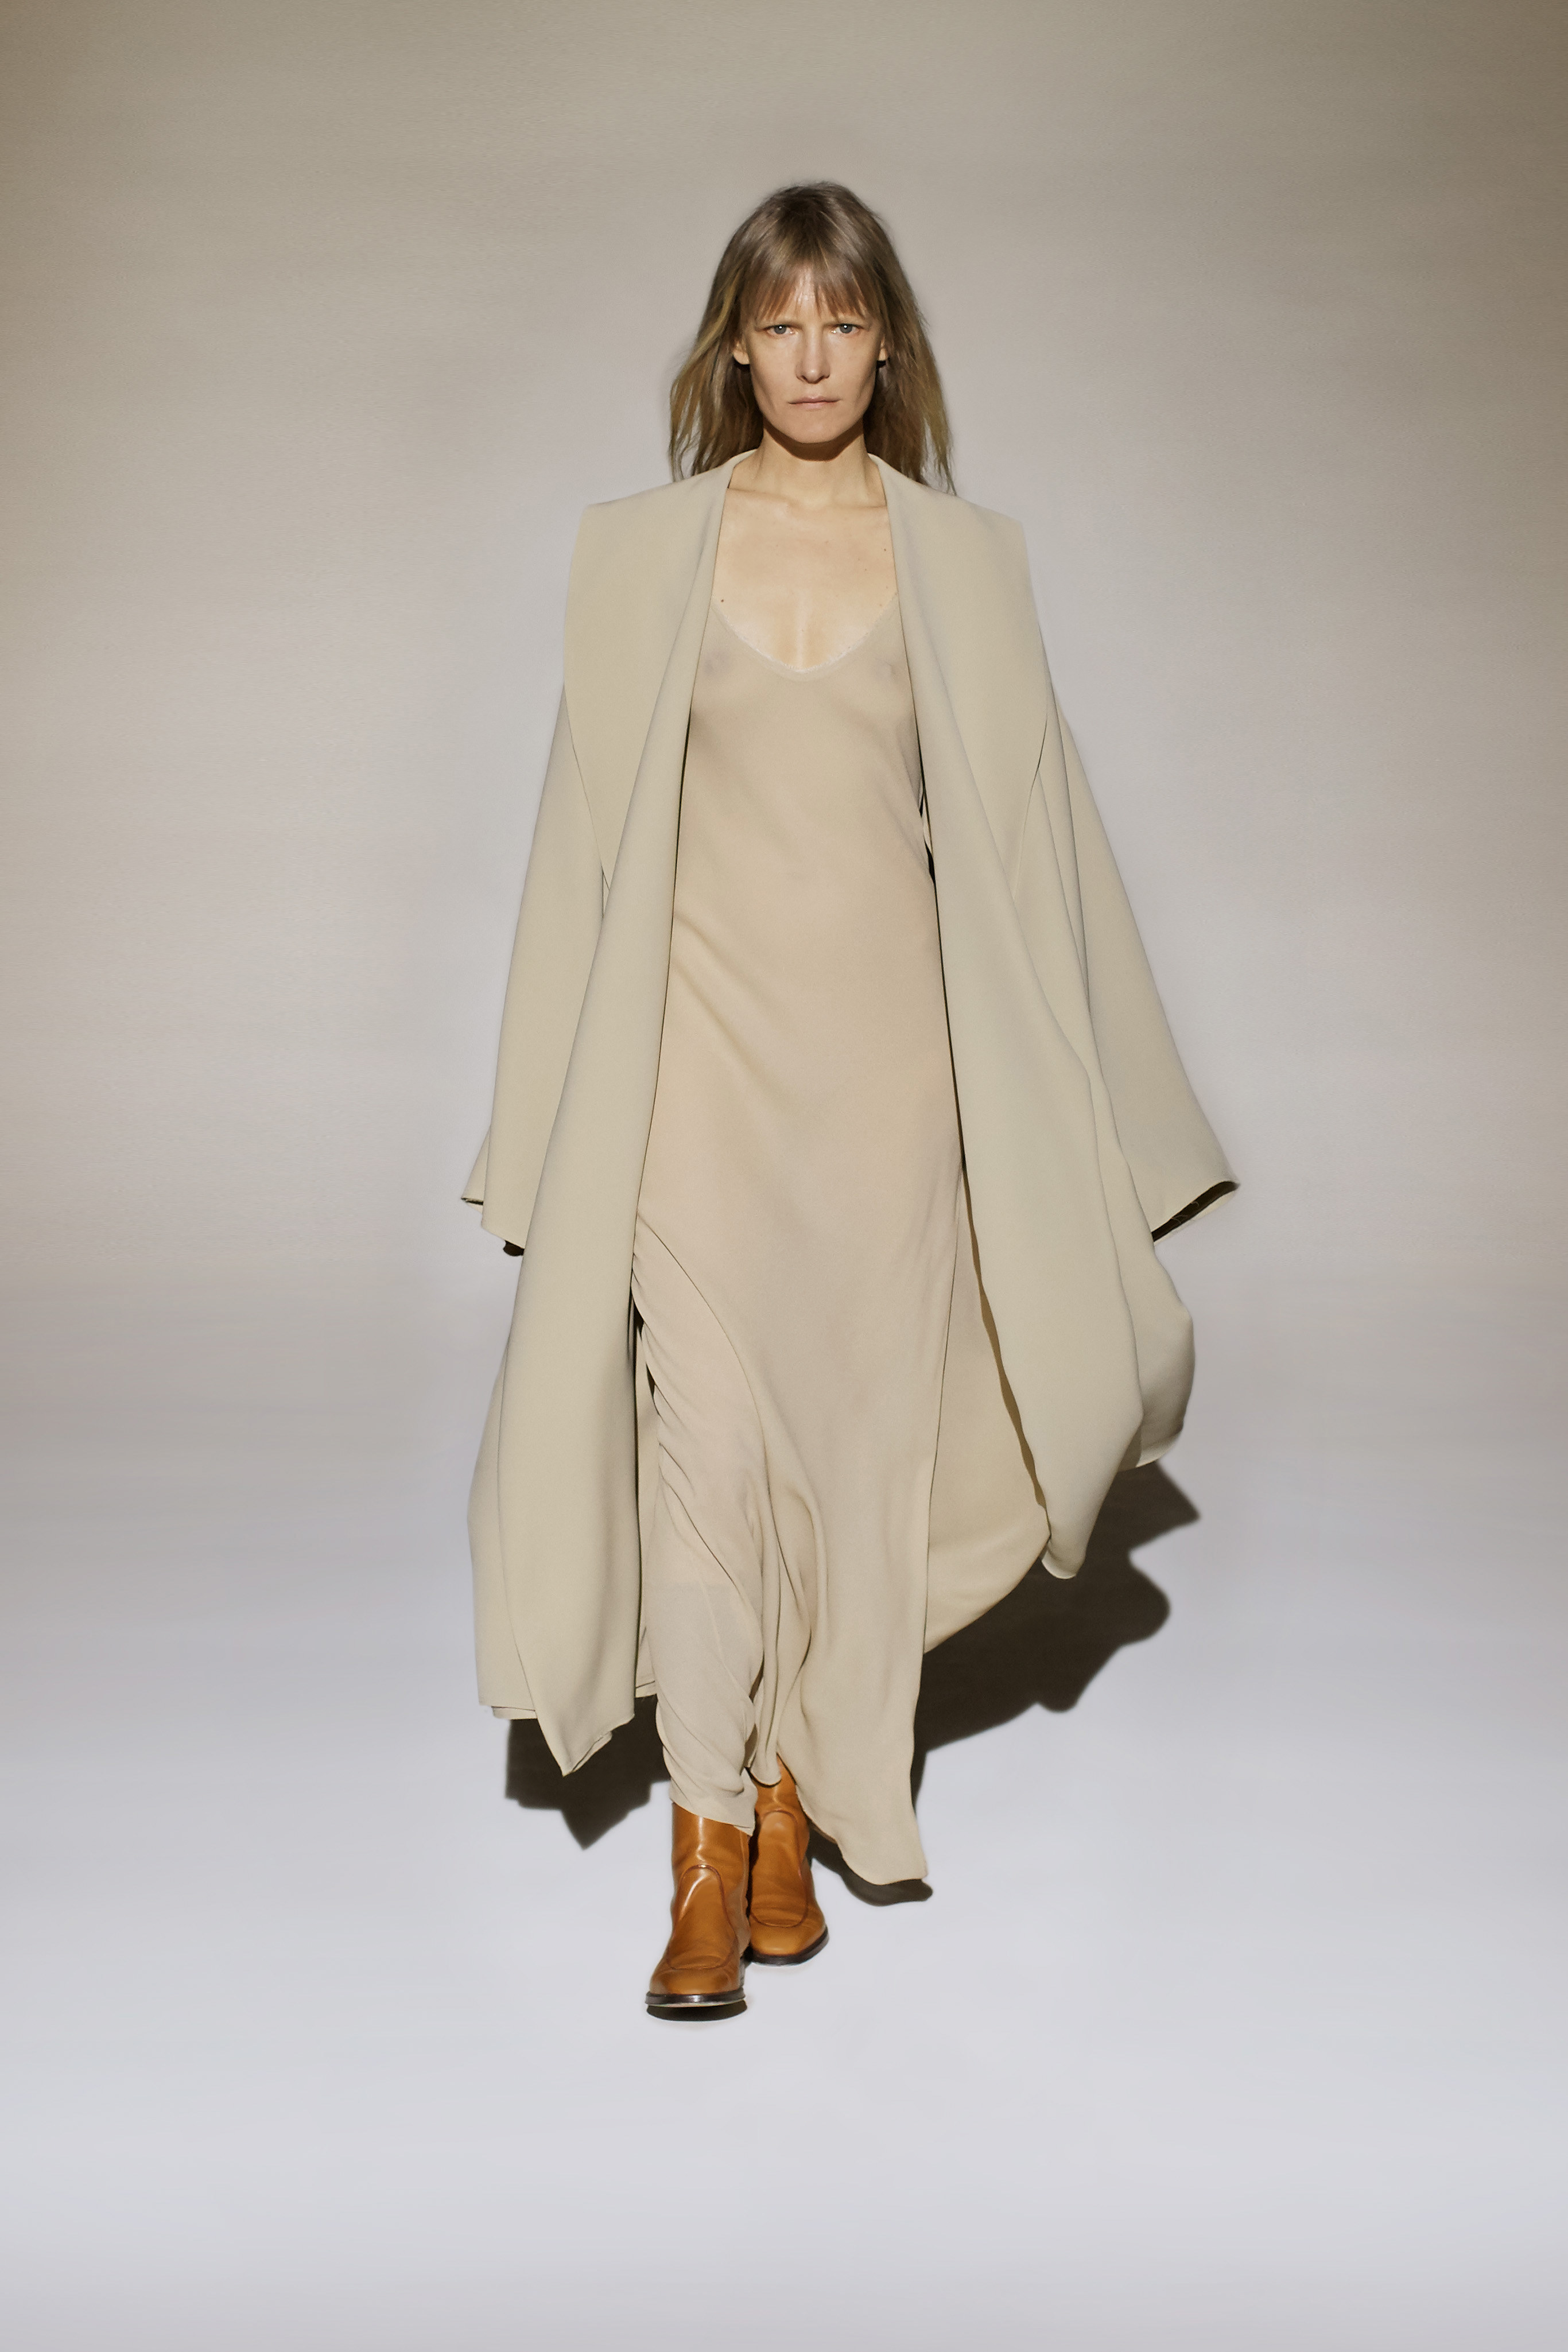 Trini |The Row Fall Winter 2016 Collection